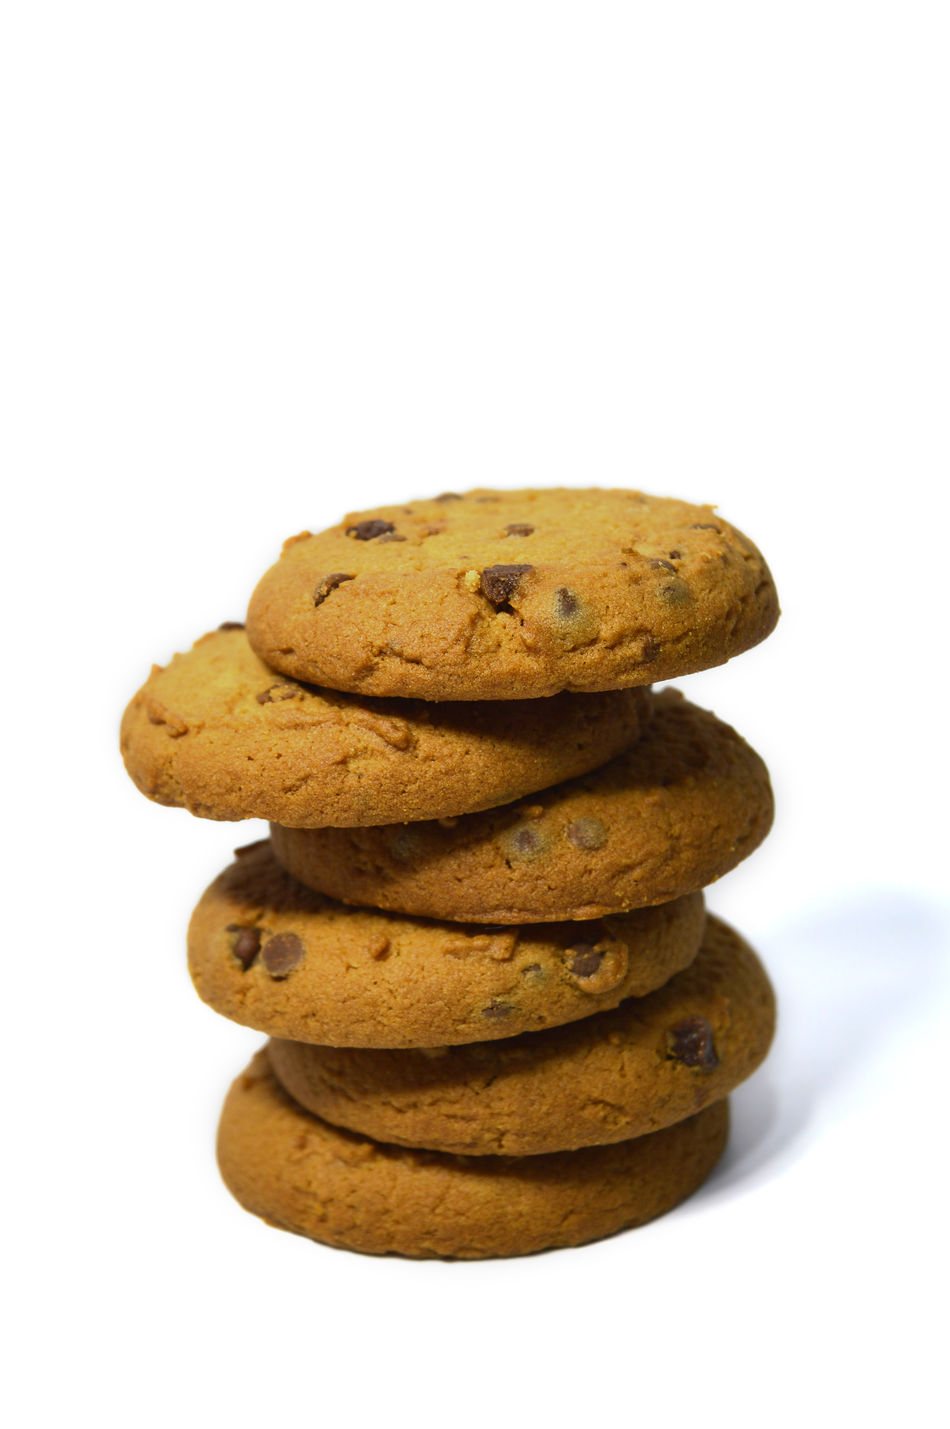 Chocolate chips cookies isolated on white Bake Balance Biscuit Breakfast Brown Calories Close-up Cookie Cookies Delicious Dessert Food Food And Drink Fresh Freshness Handmade Heap No People Snack Stack Studio Shot Sweet Food Temptation White Background